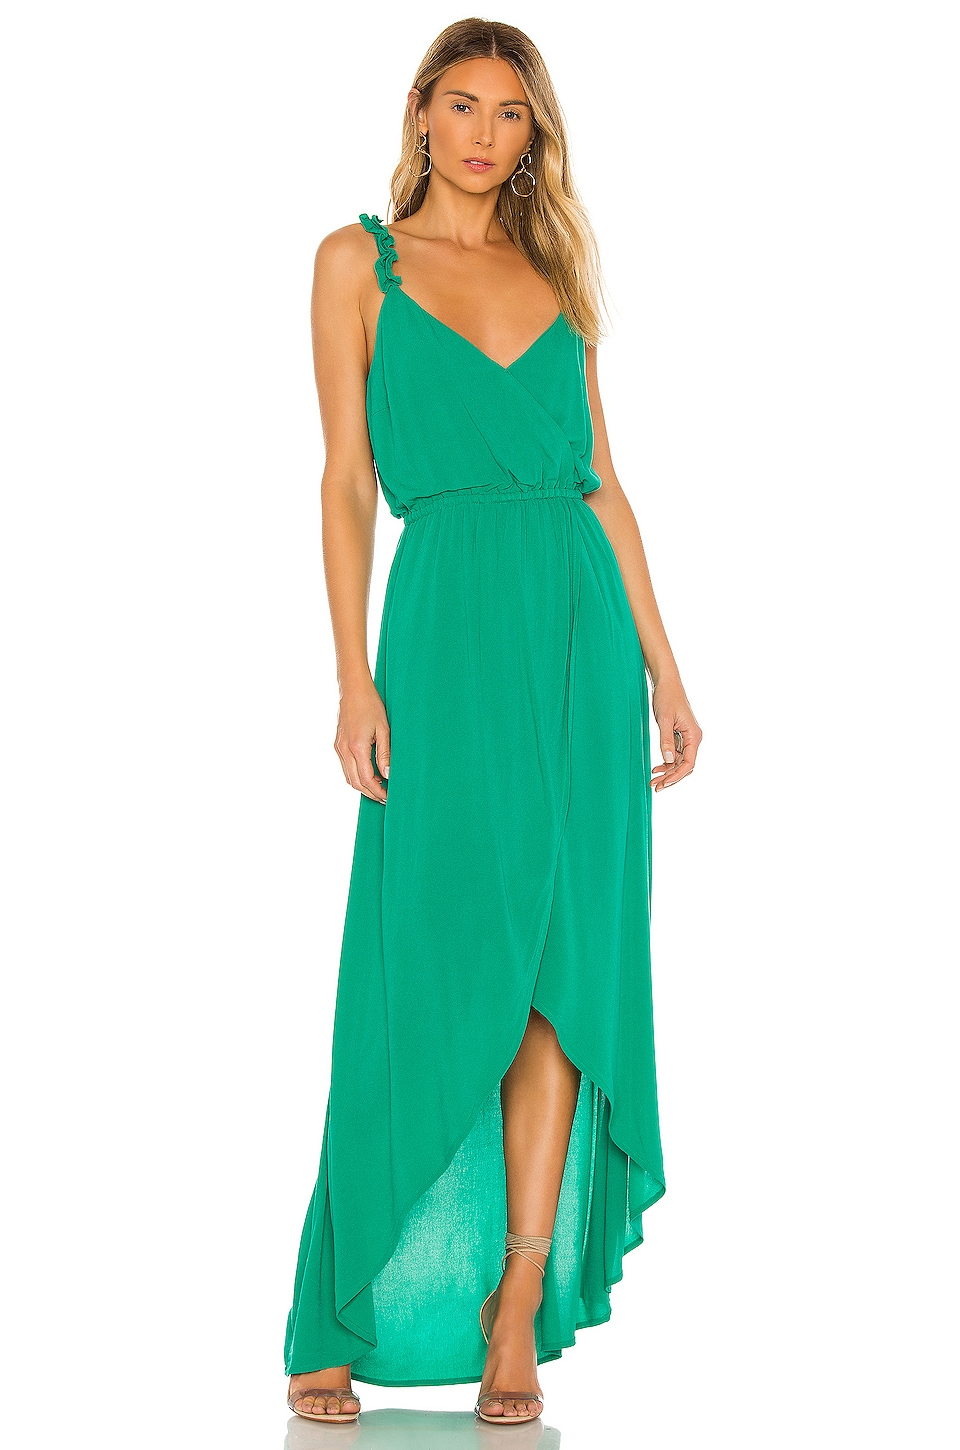 JACK by BB Dakota Ruffle & Cut Midi Dress             BB Dakota                                                                                                       CA$ 122.67 16